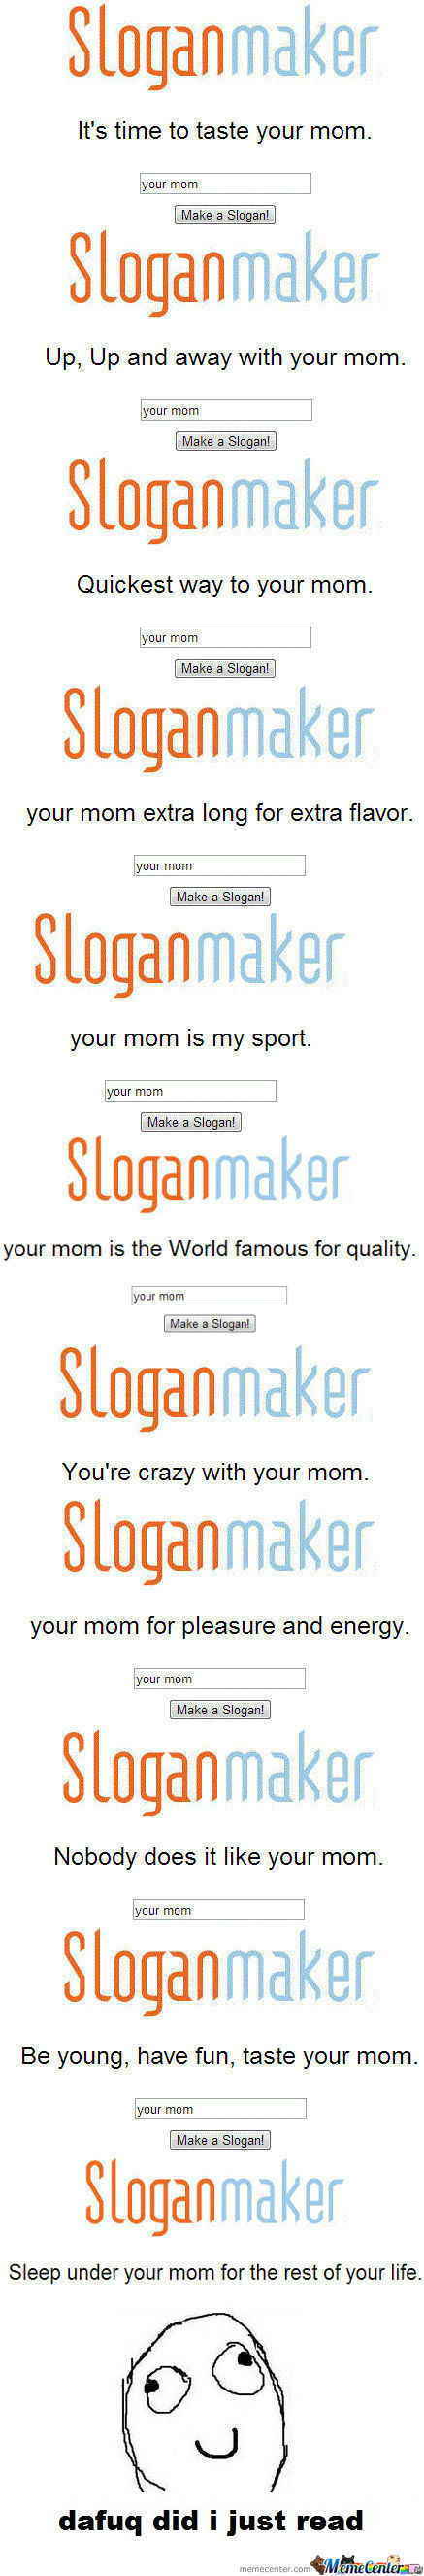 [RMX] Sloganmaker: Your Mom